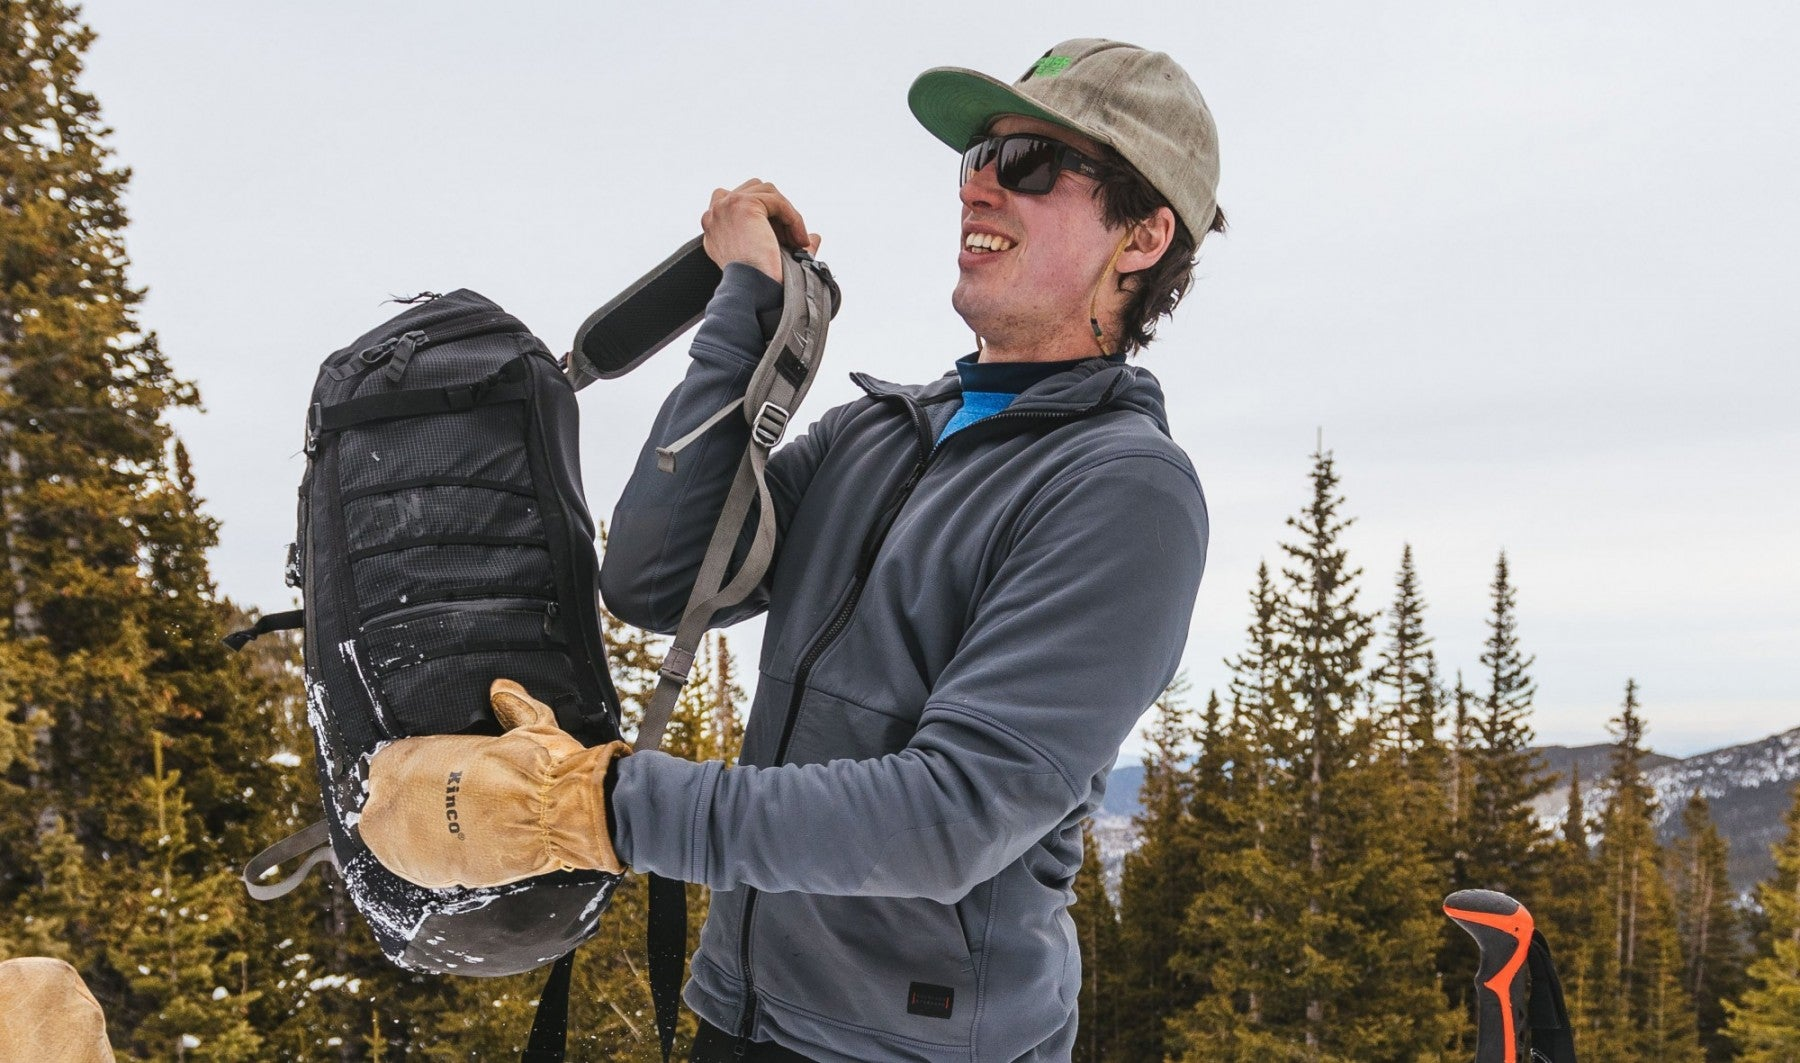 hiker wearing winter gear slings backpack over his shoulder in snowy forest environment